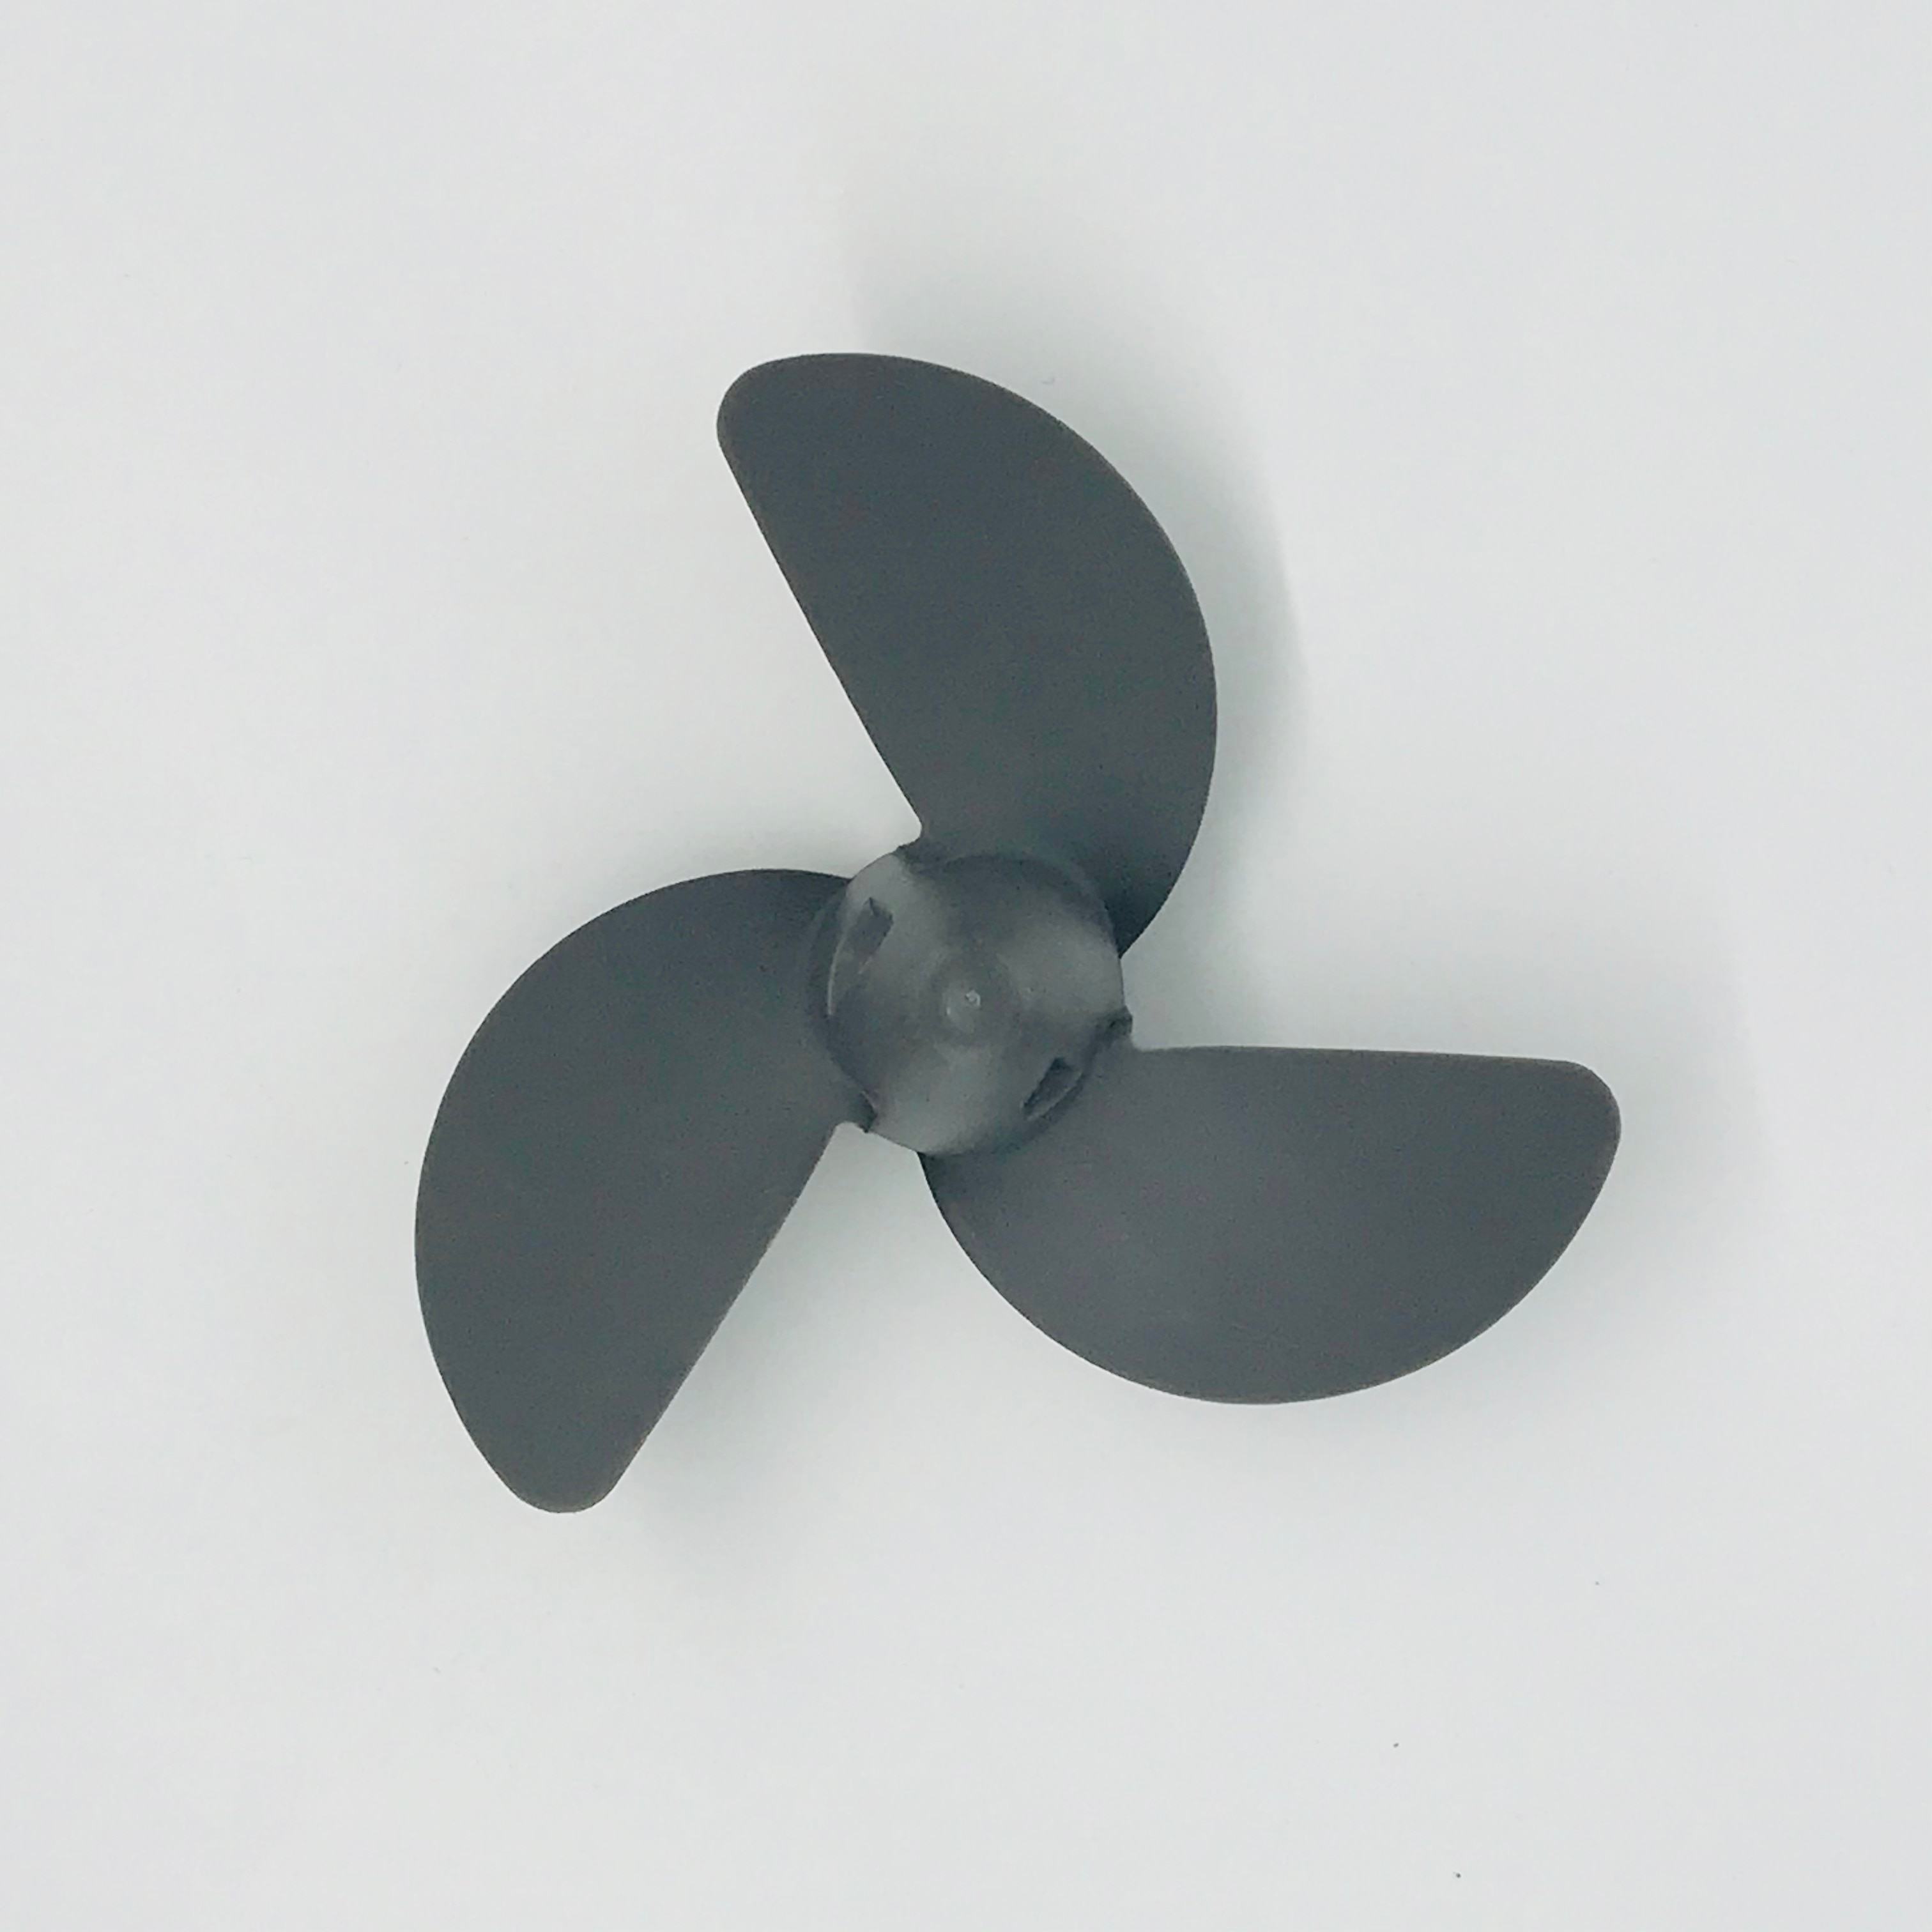 Captain Propeller 7 1/4 x 4 3/4 58130-ZV0-841ZB Fit Honda Outboard Engine BF2 / BF2.3 HP *NH283* (STIN GRAY)